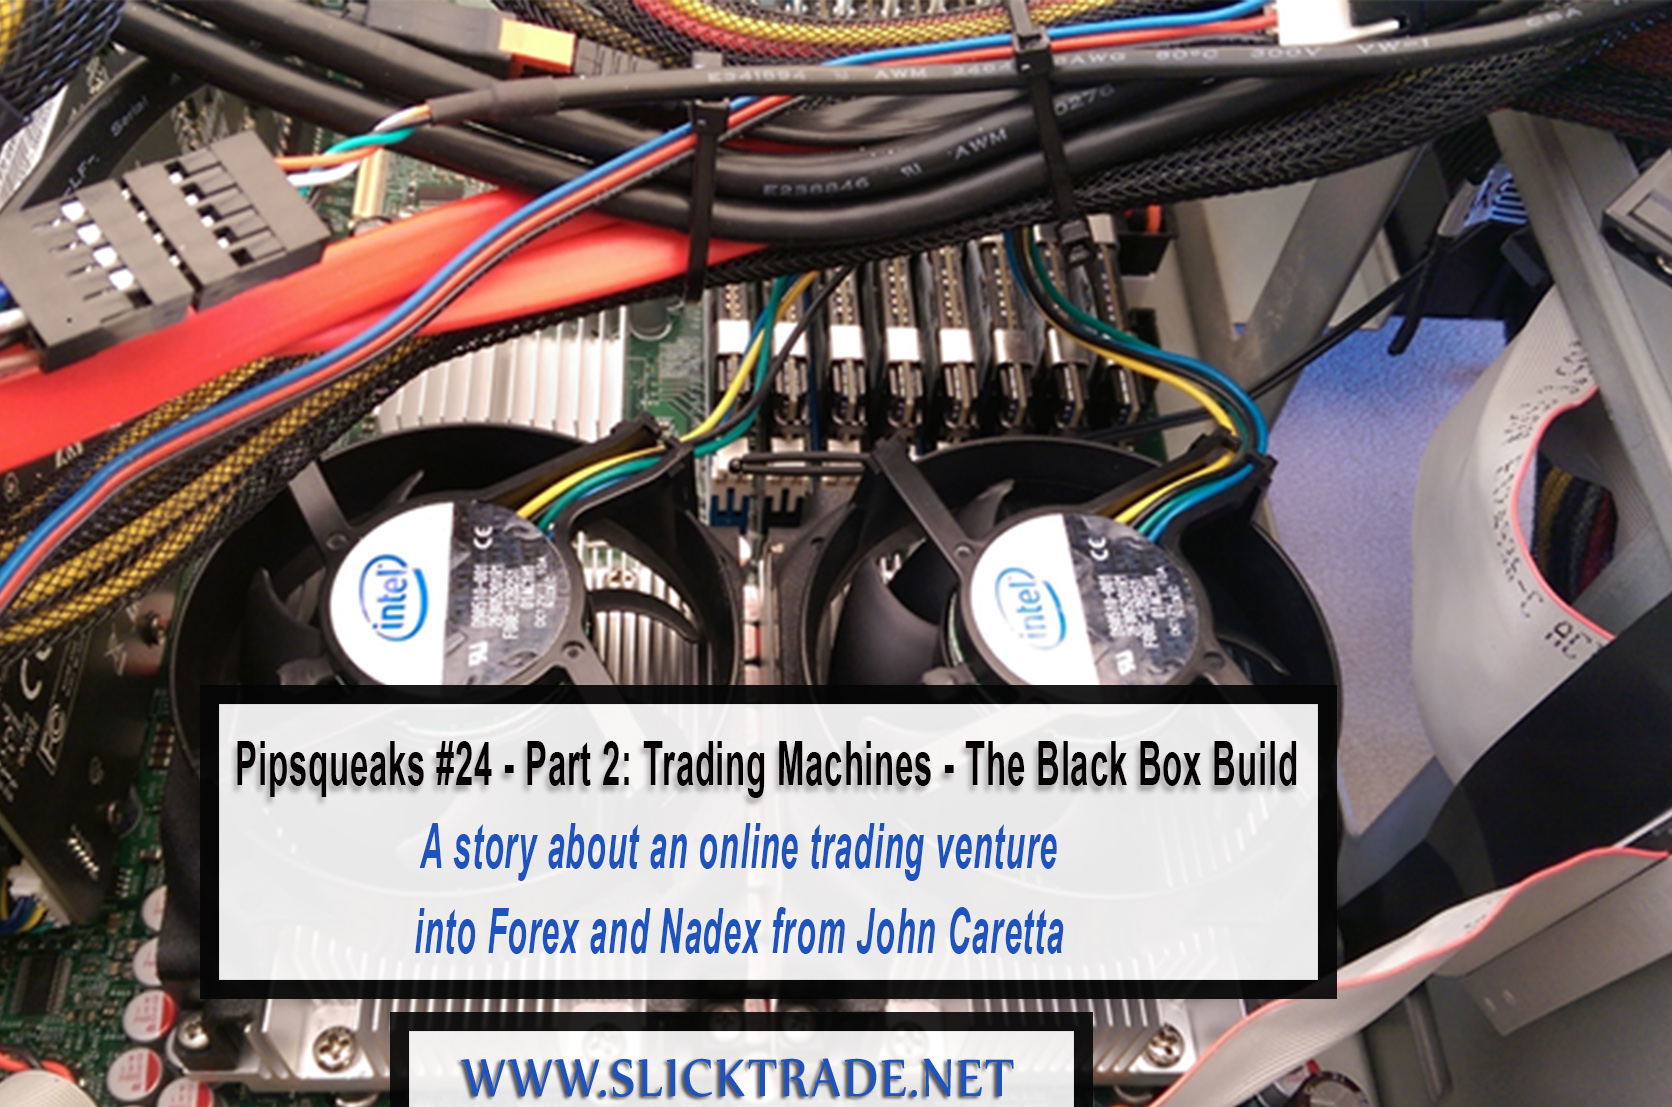 Building a black box trading system